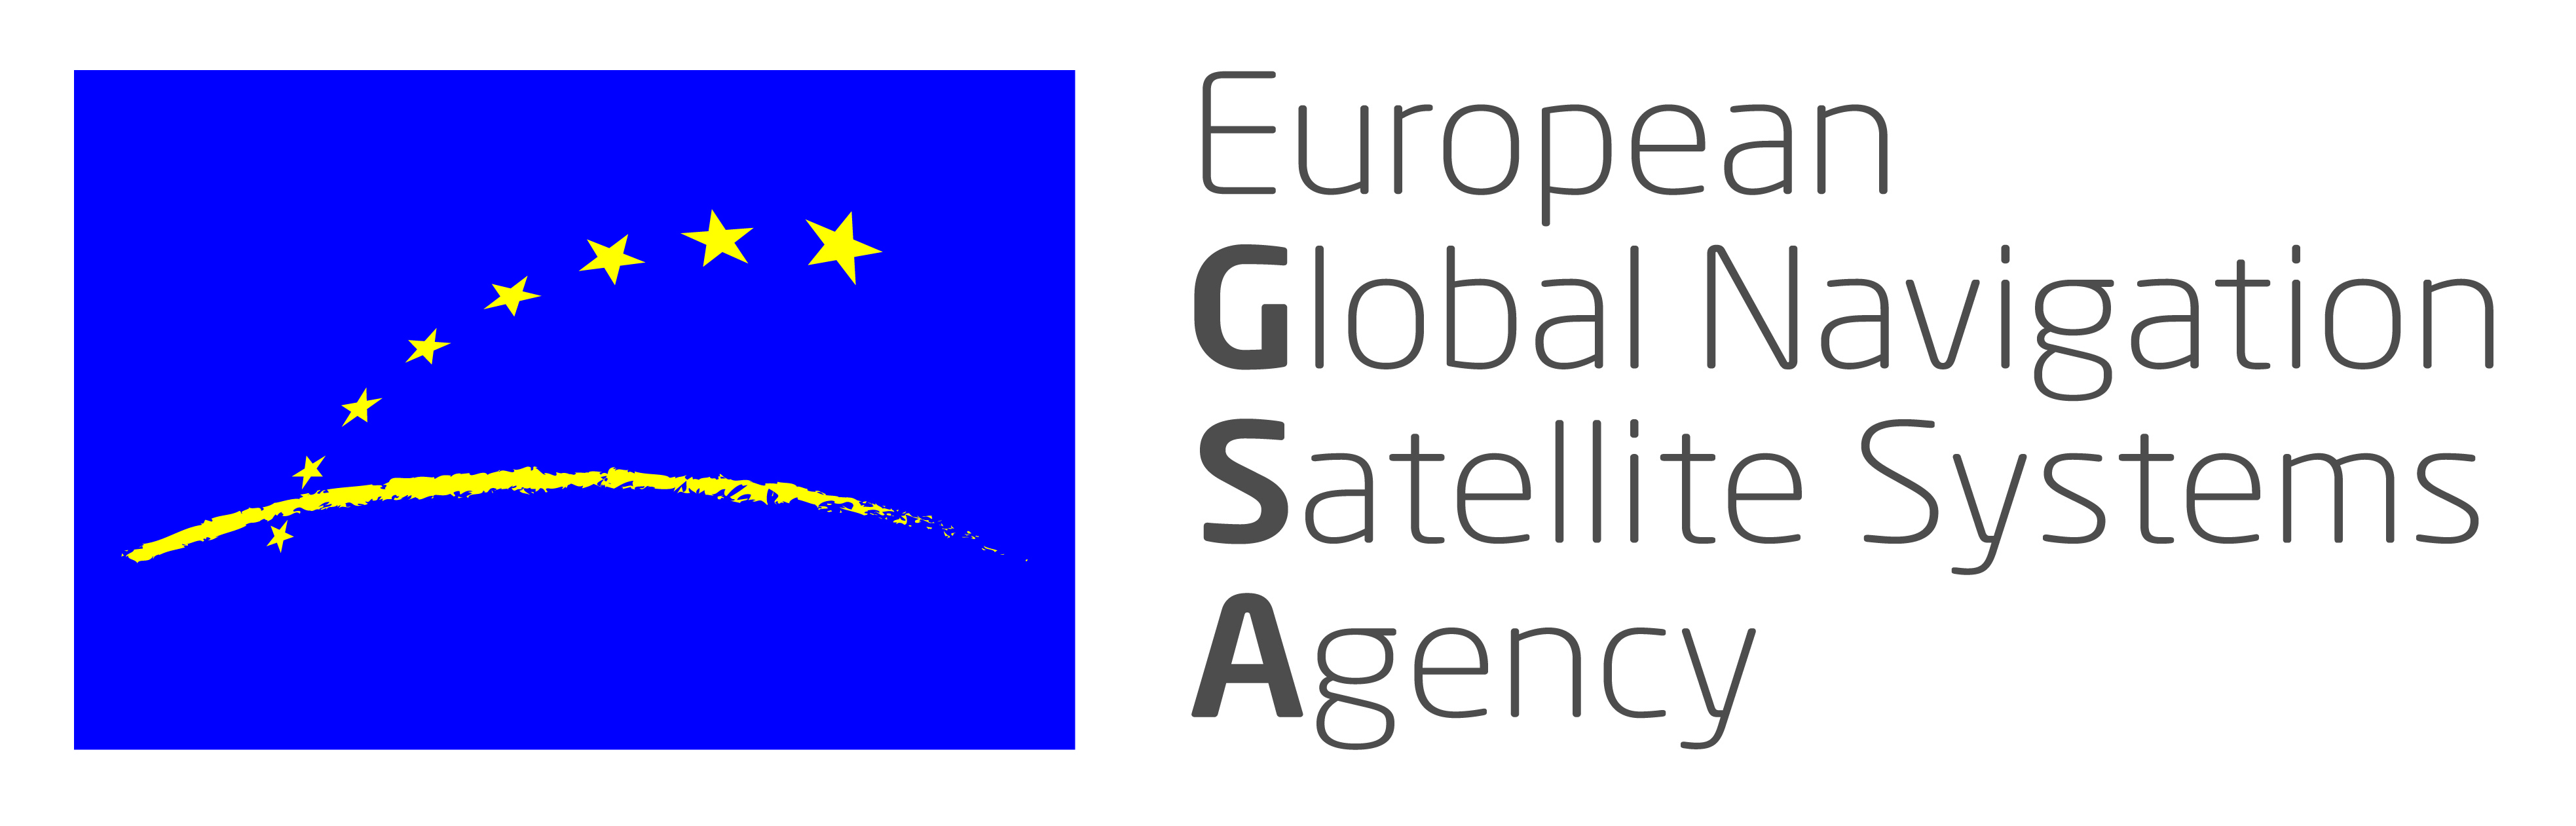 Gsa Identity European Global Navigation Satellite